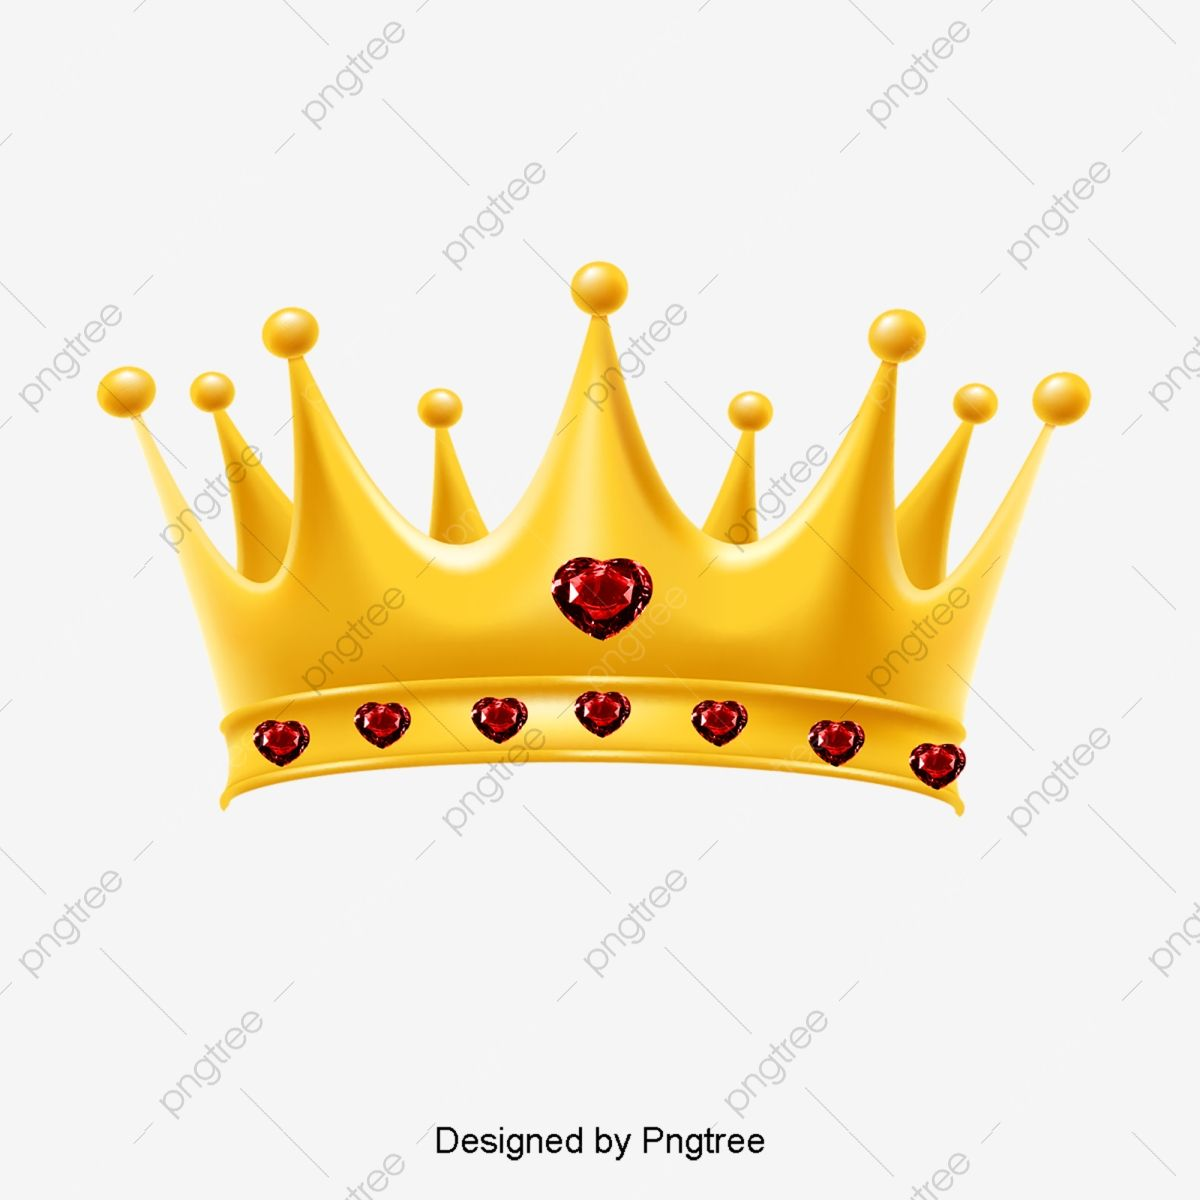 3d Diamond Crown Queen Queen Crown Clipart Queen Crown Crown Clipart Png Transparent Clipart Image And Psd File For Free Download Crown Png Crown Design Diamond Crown